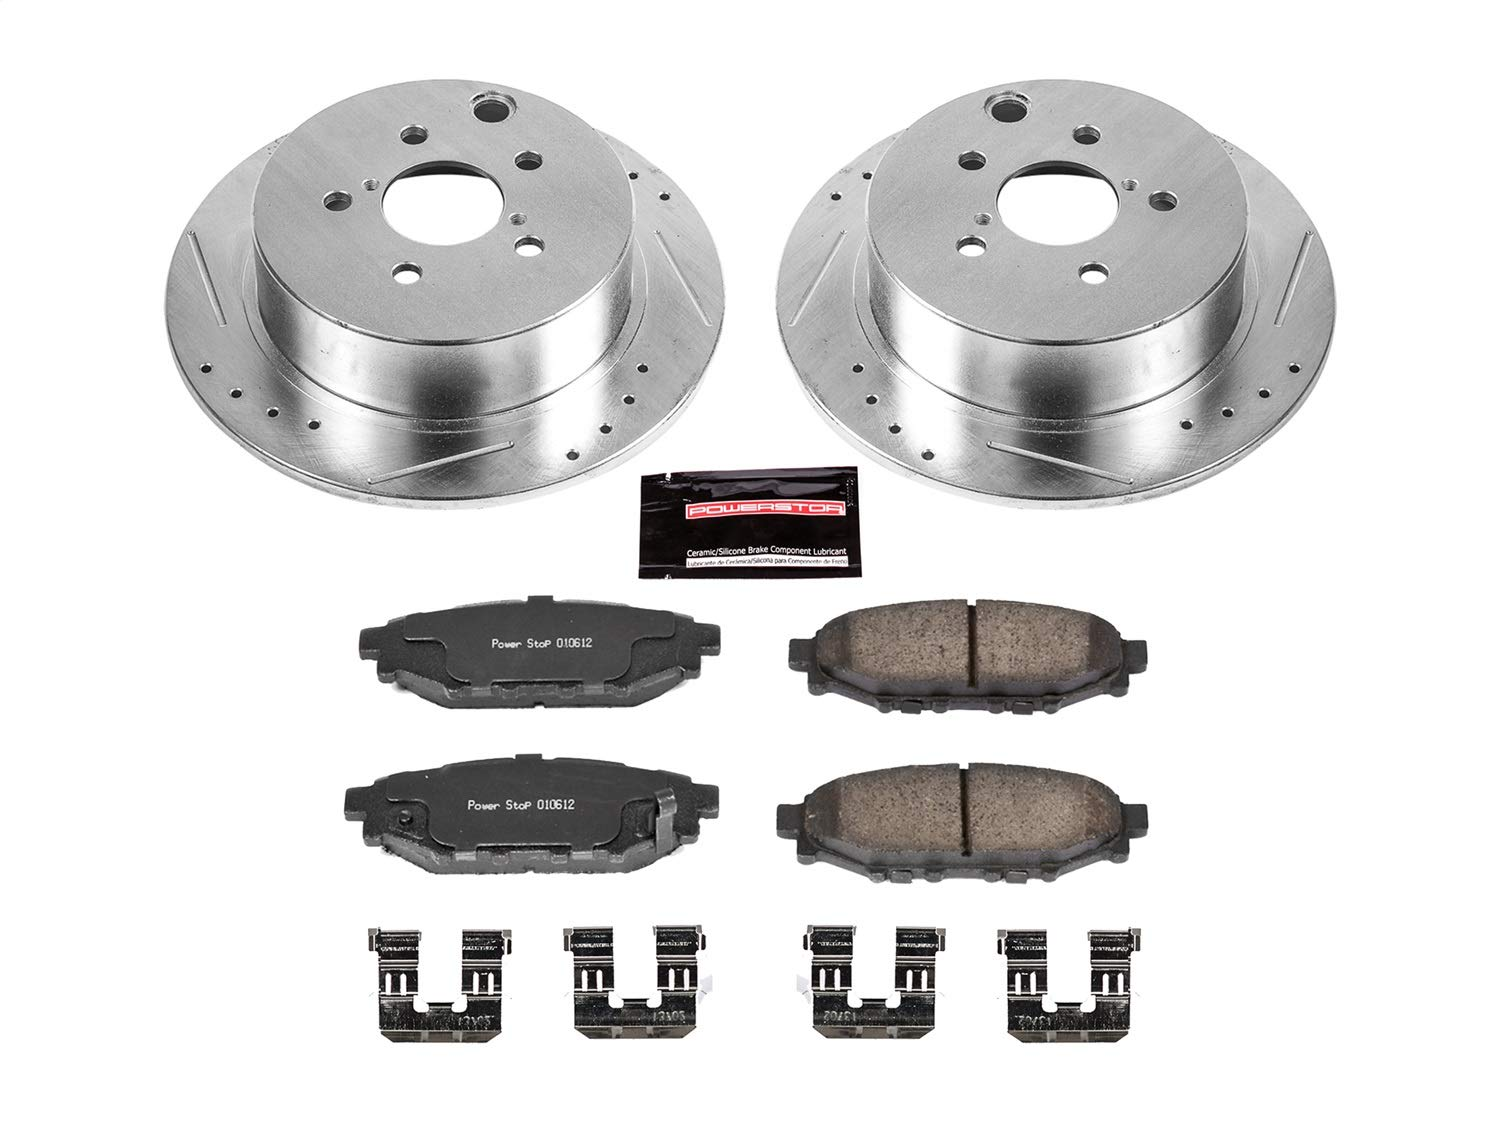 2 Silver Coated Cross-Drilled Disc Brake Rotors Heavy Tough-Series Fits:- 5lug Rear Rotors